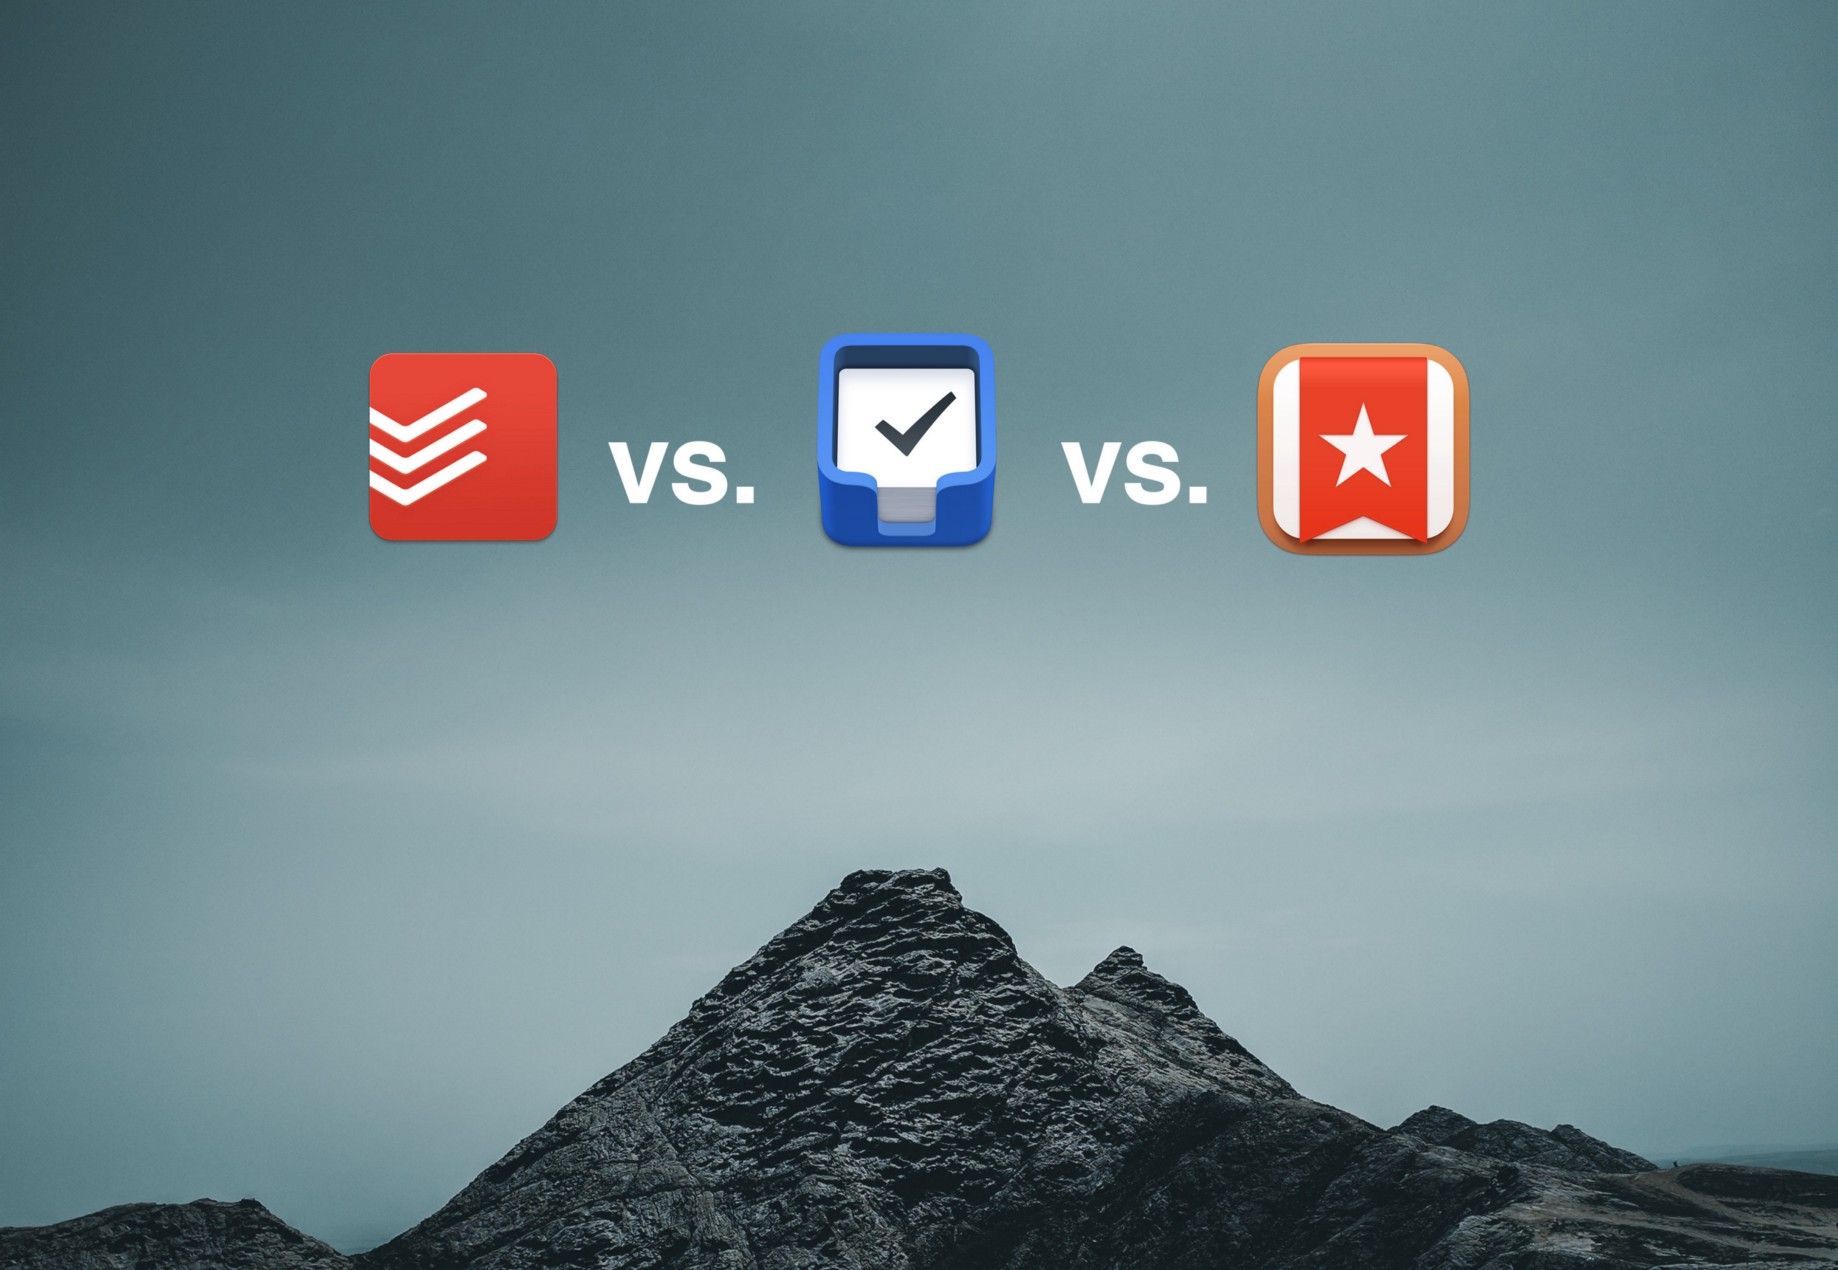 Todoist vs  Things 3 vs  Wunderlist - Jan Östlund - Medium